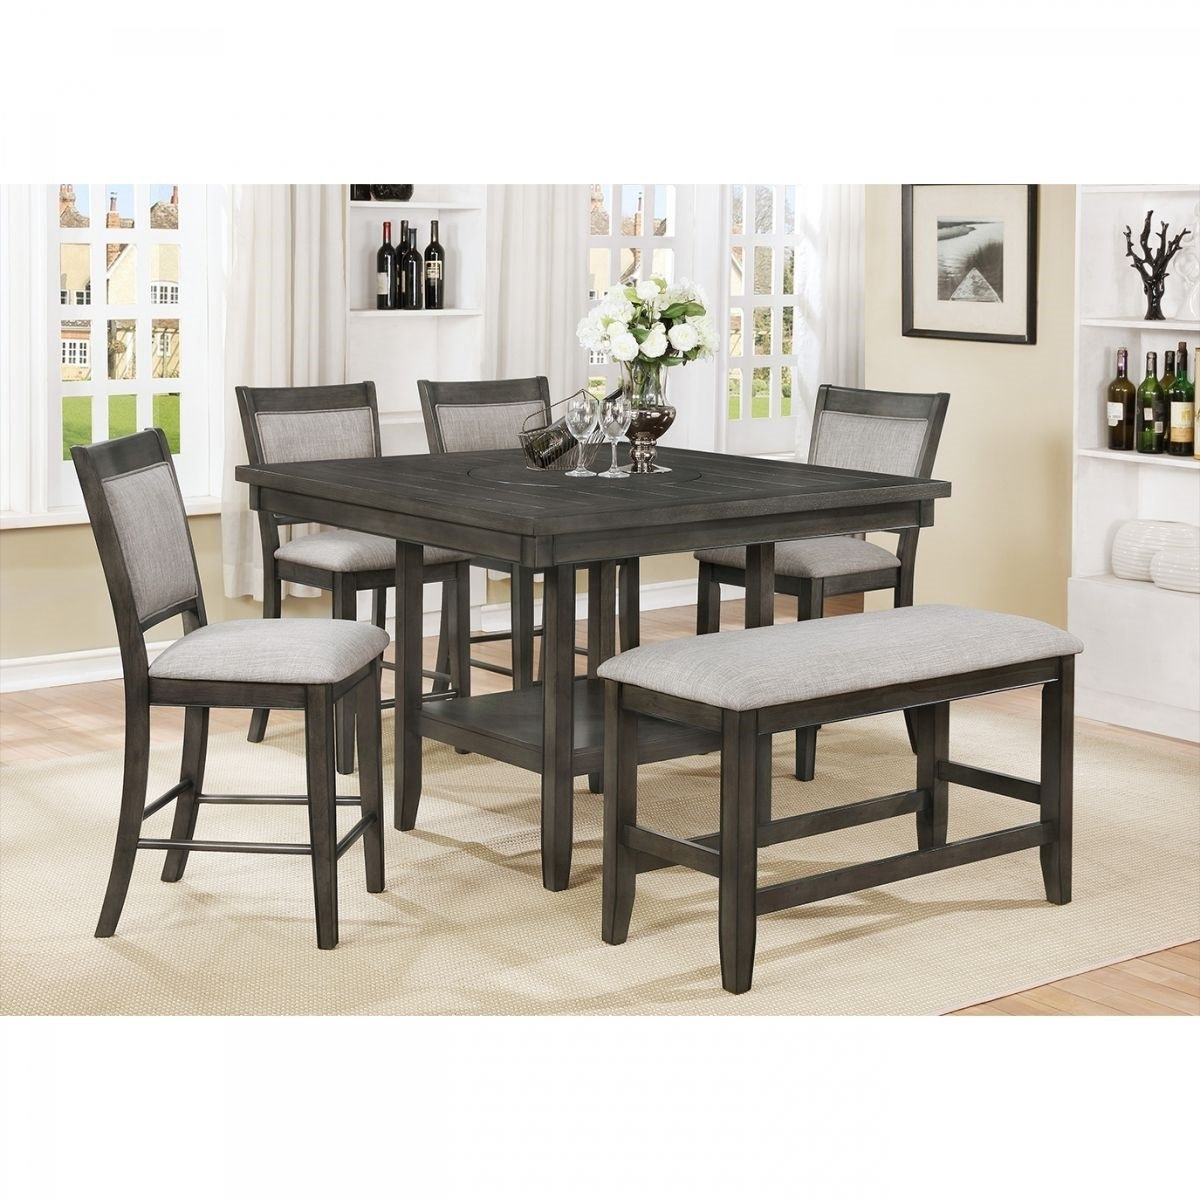 Fulton Gray 6 Pc Counter Height Dining Room | Badcock & More Within Most Recent Valencia 5 Piece Counter Sets With Counterstool (View 16 of 20)